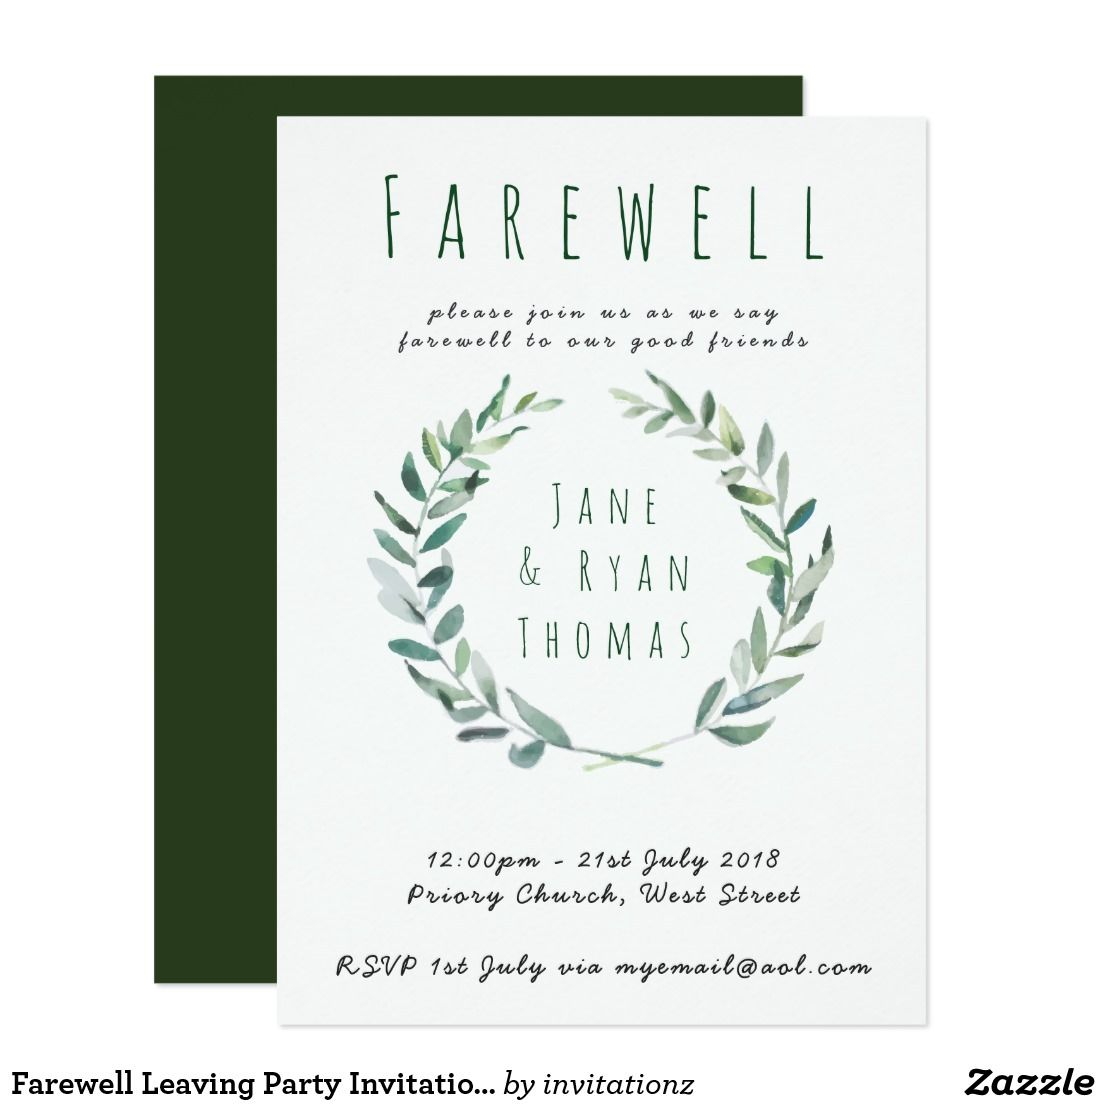 Farewell Leaving Party Invitation Botanical Green   Gift Ideas ...